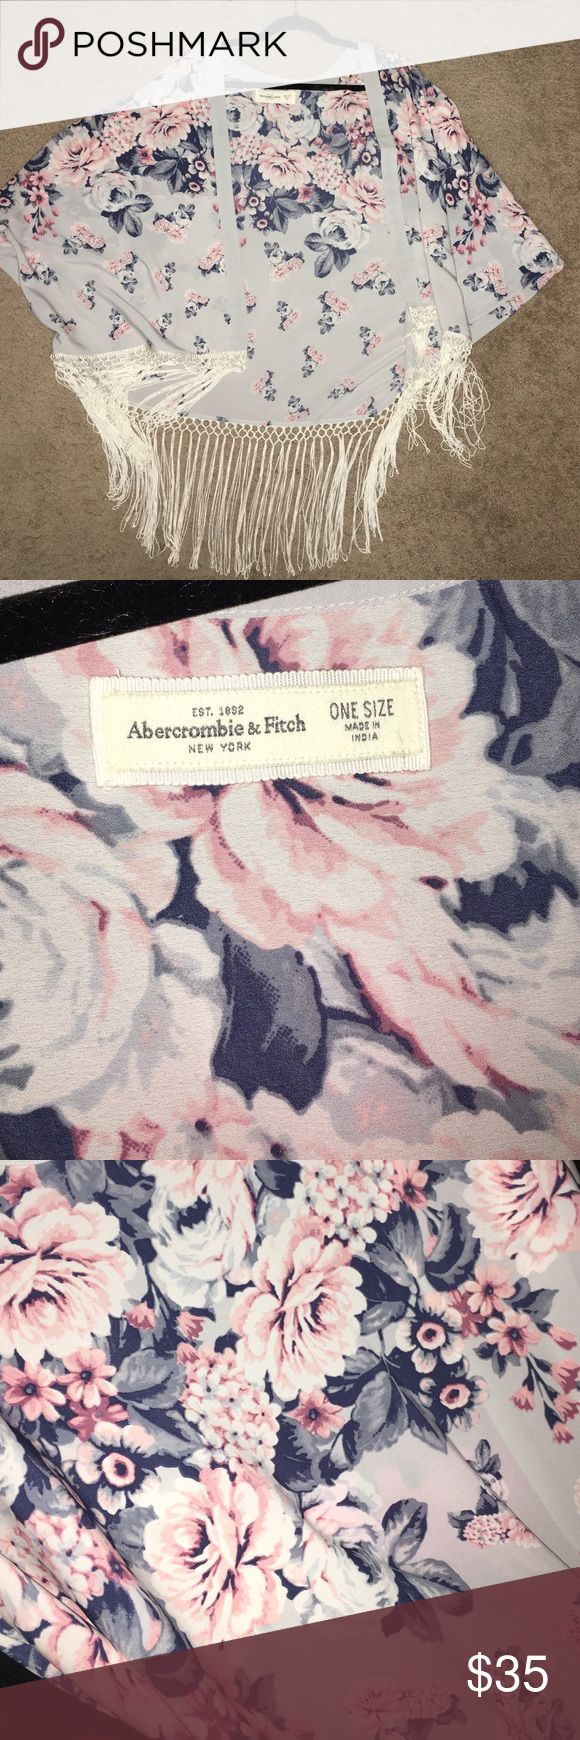 Abercrombie & Fitch kimono A&F kimono, in perfect condition and never worn. Tassles at the bottom of the kimono Abercrombie & Fitch Other